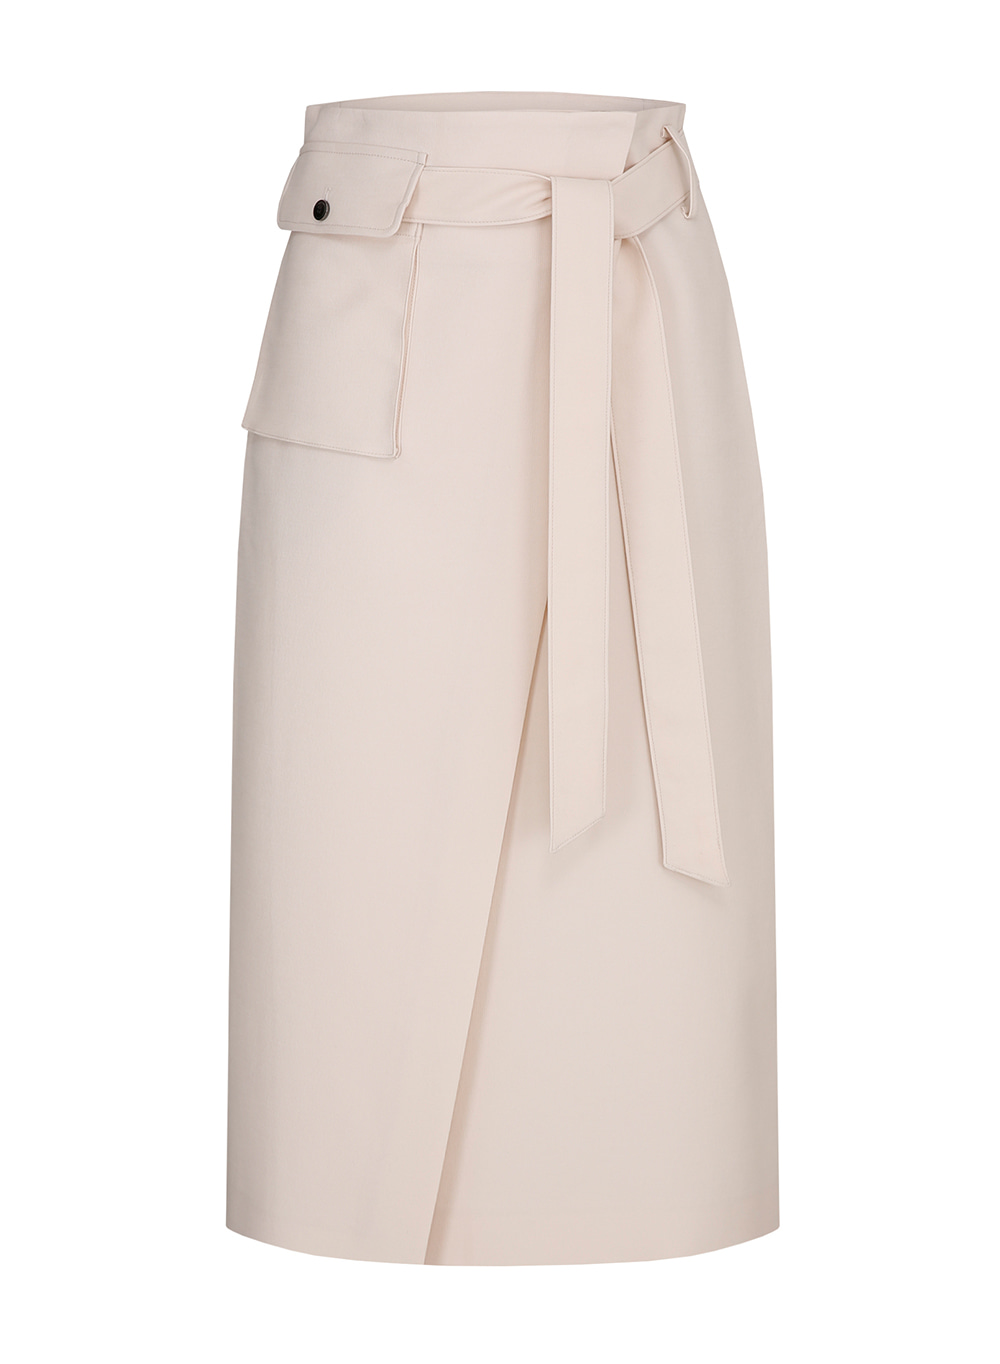 SS19 Highwaist Wrap Skirt Cream